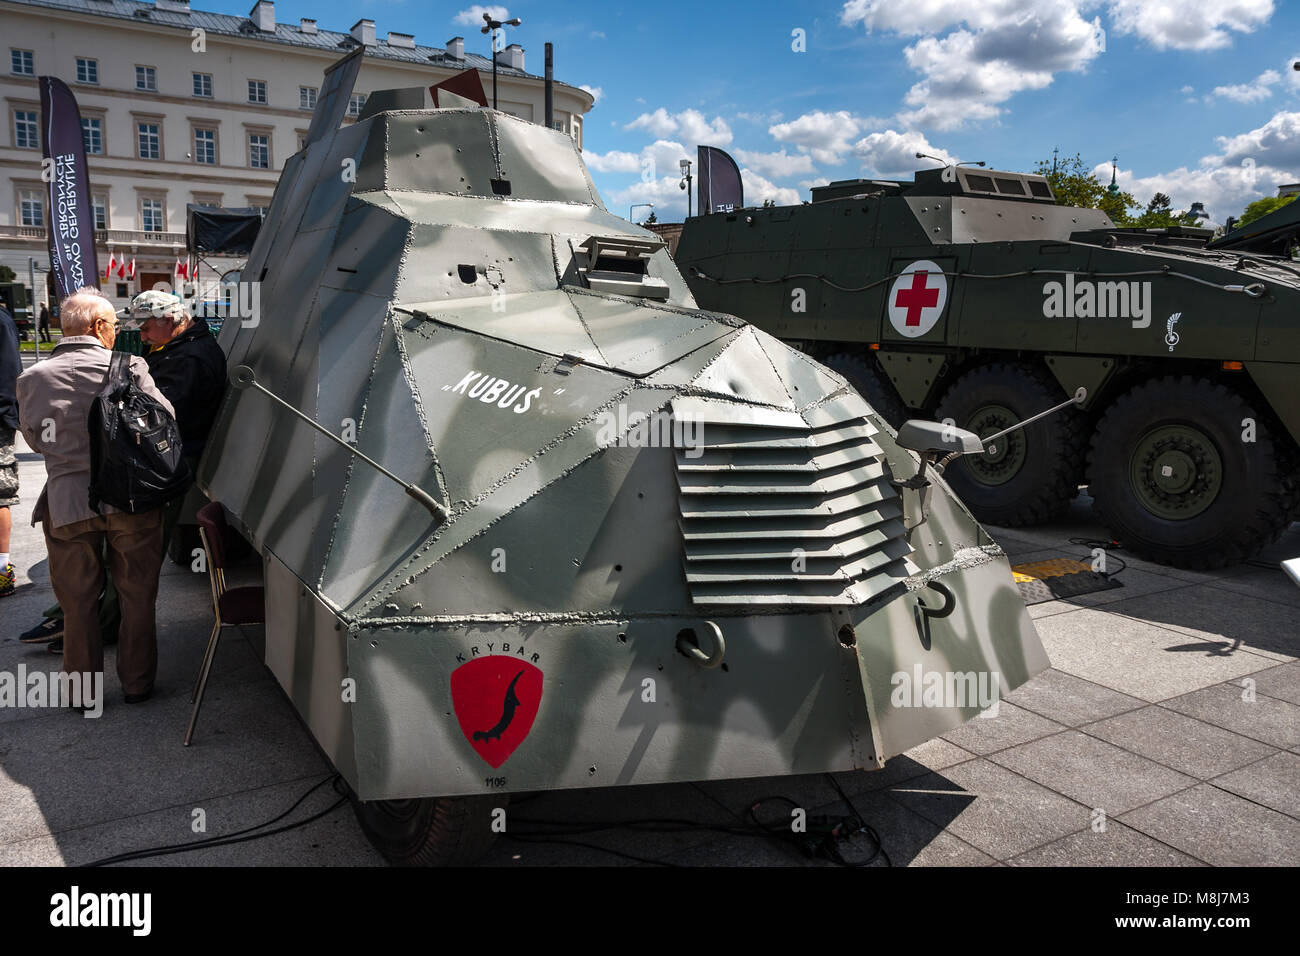 WARSAW, POLAND - MAY 08, 2015: Armored Car KUBUS, created by the ...